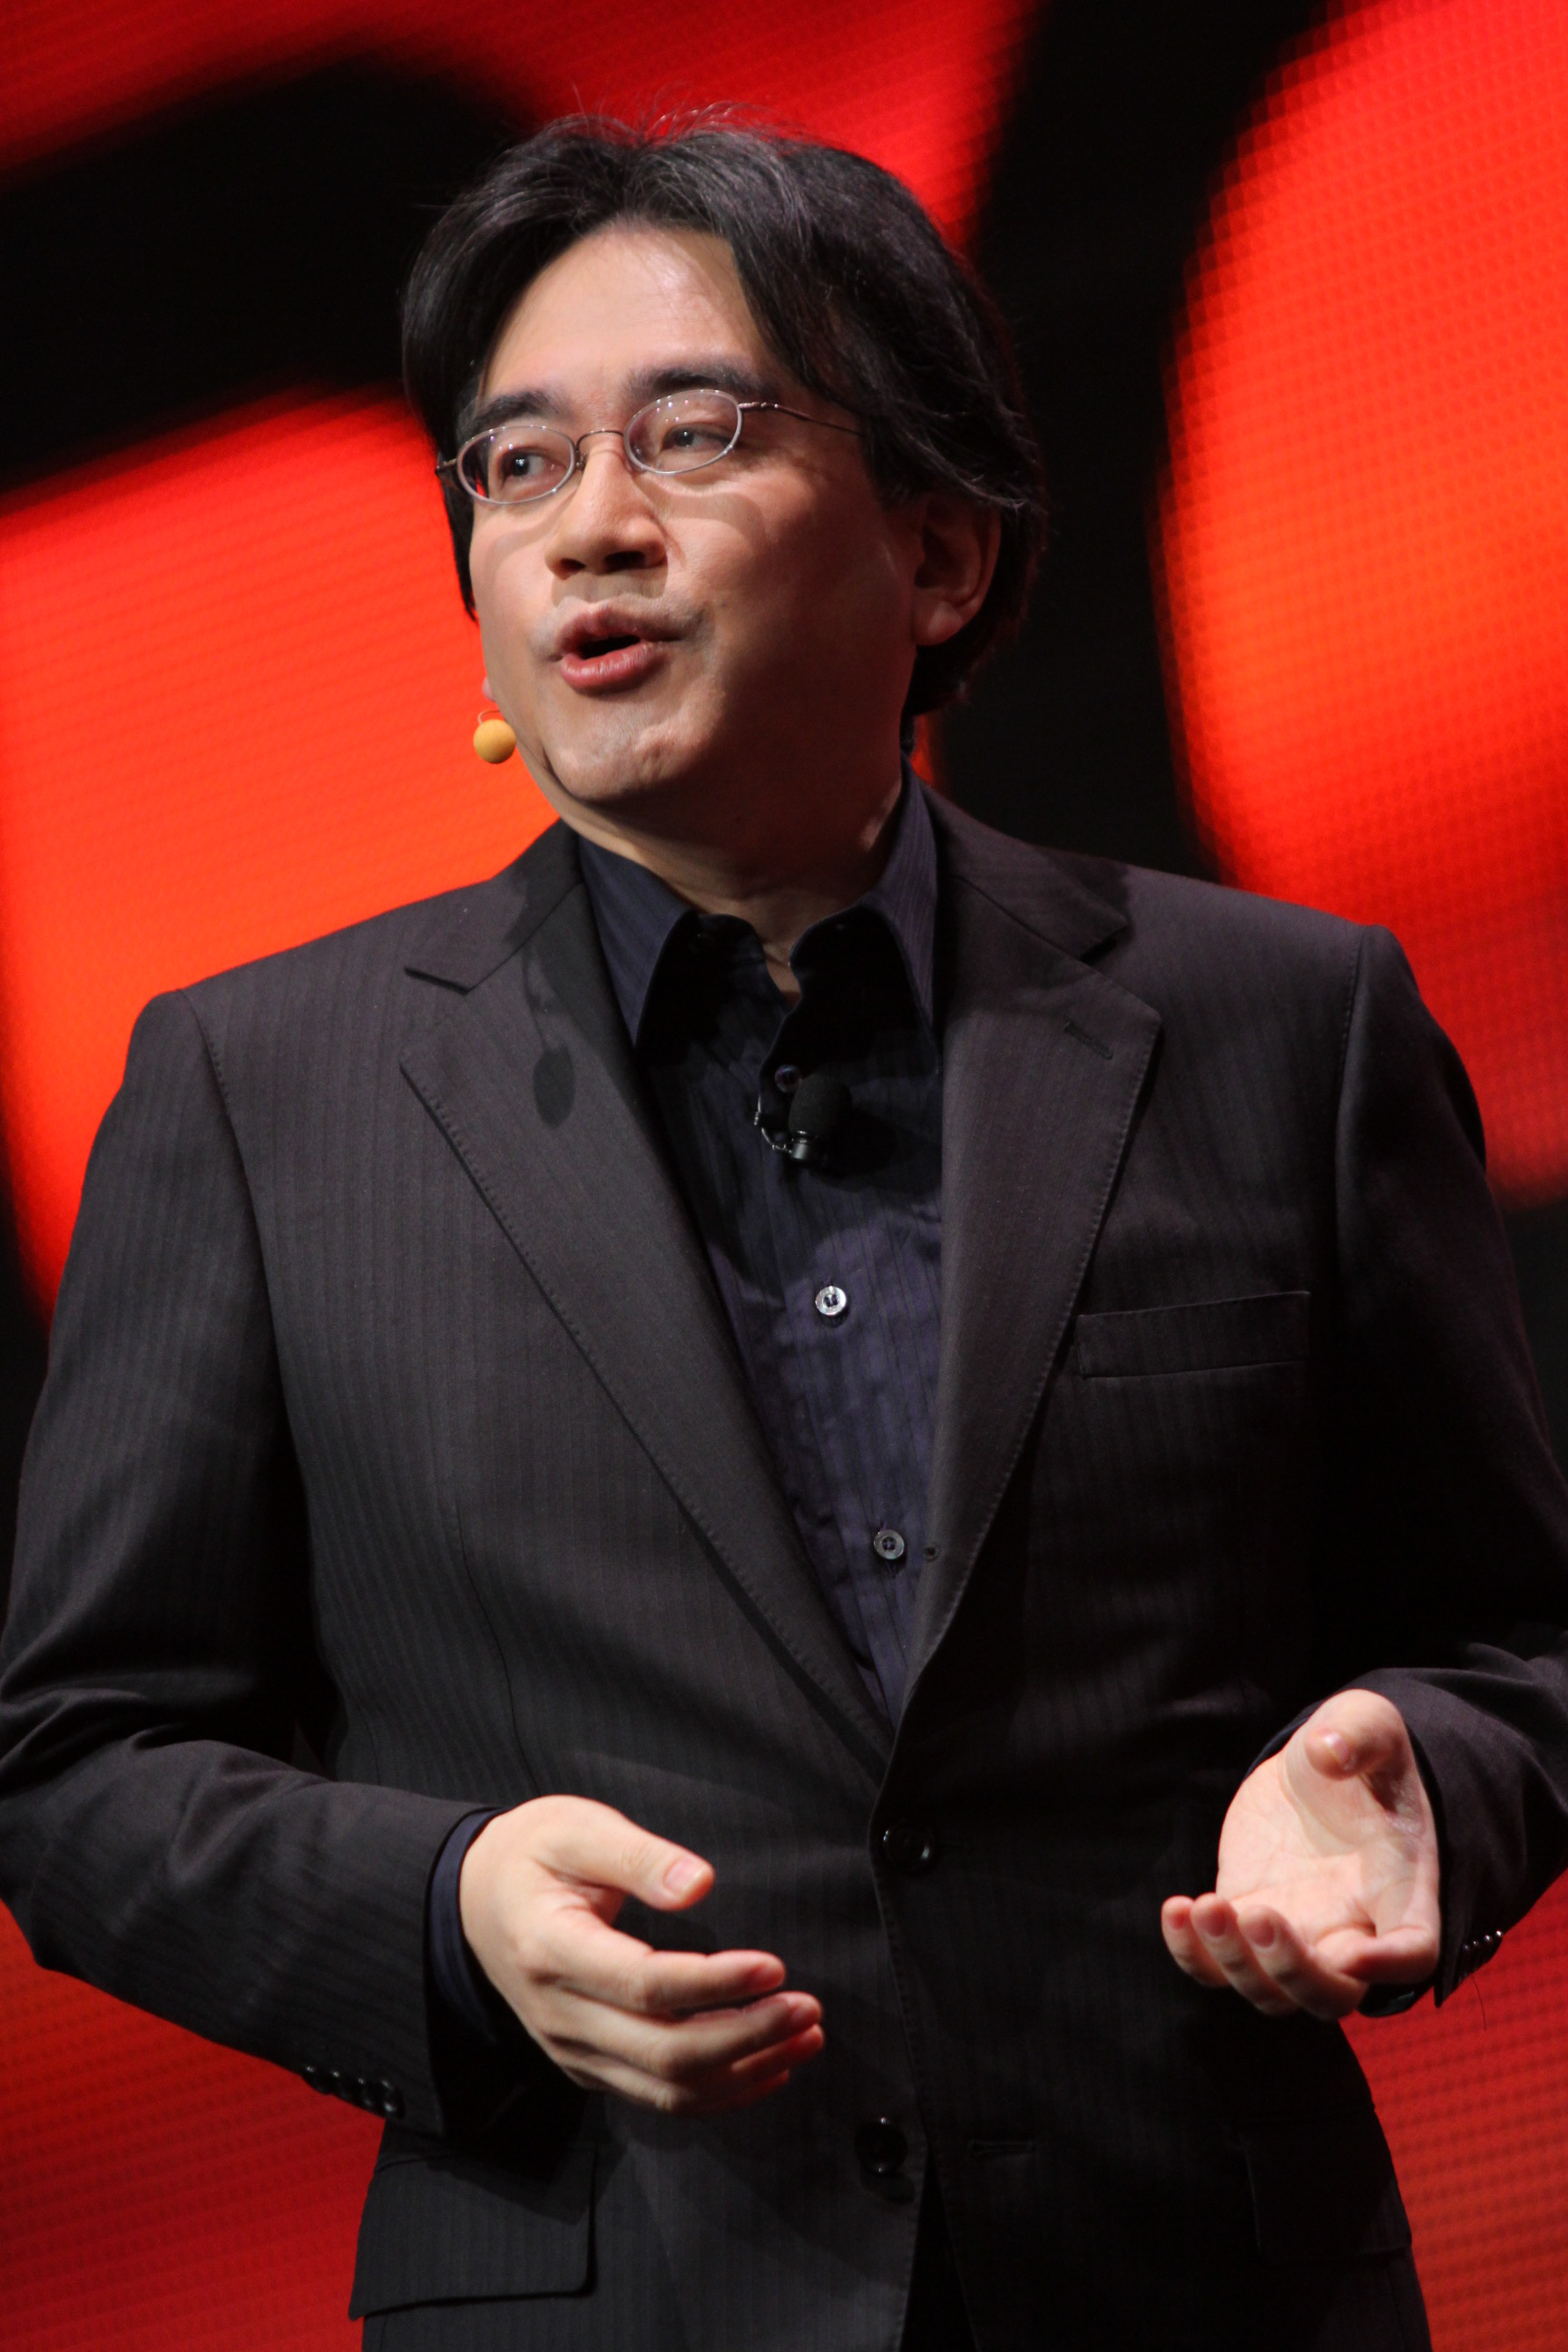 https://upload.wikimedia.org/wikipedia/commons/3/3d/Satoru_Iwata_-_Game_Developers_Conference_2011_-_Day_2_%281%29.jpg